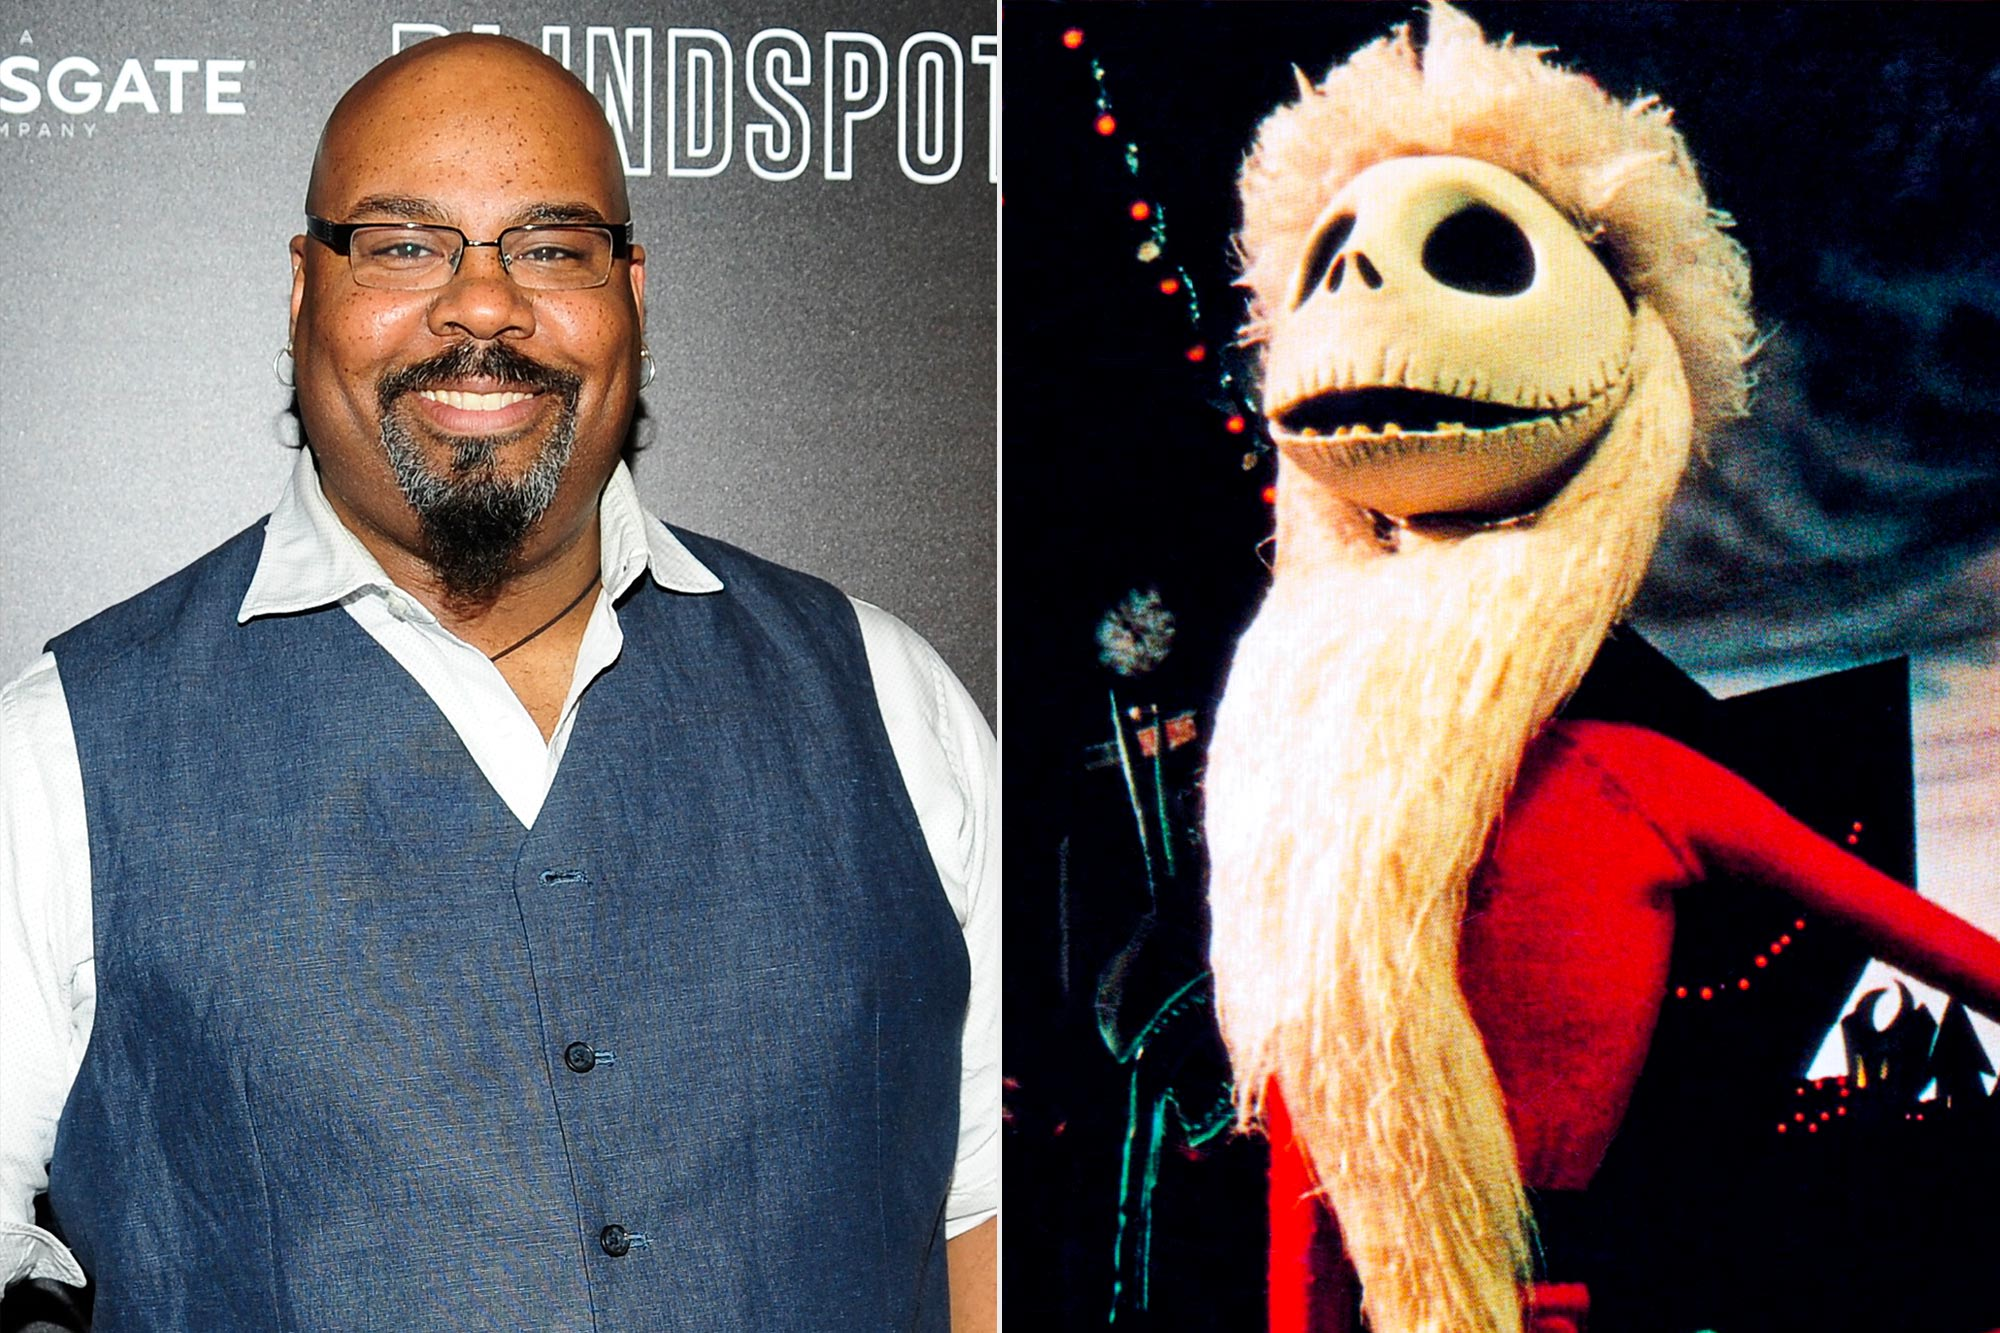 James Monroe Iglehart; THE NIGHTMARE BEFORE CHRISTMAS